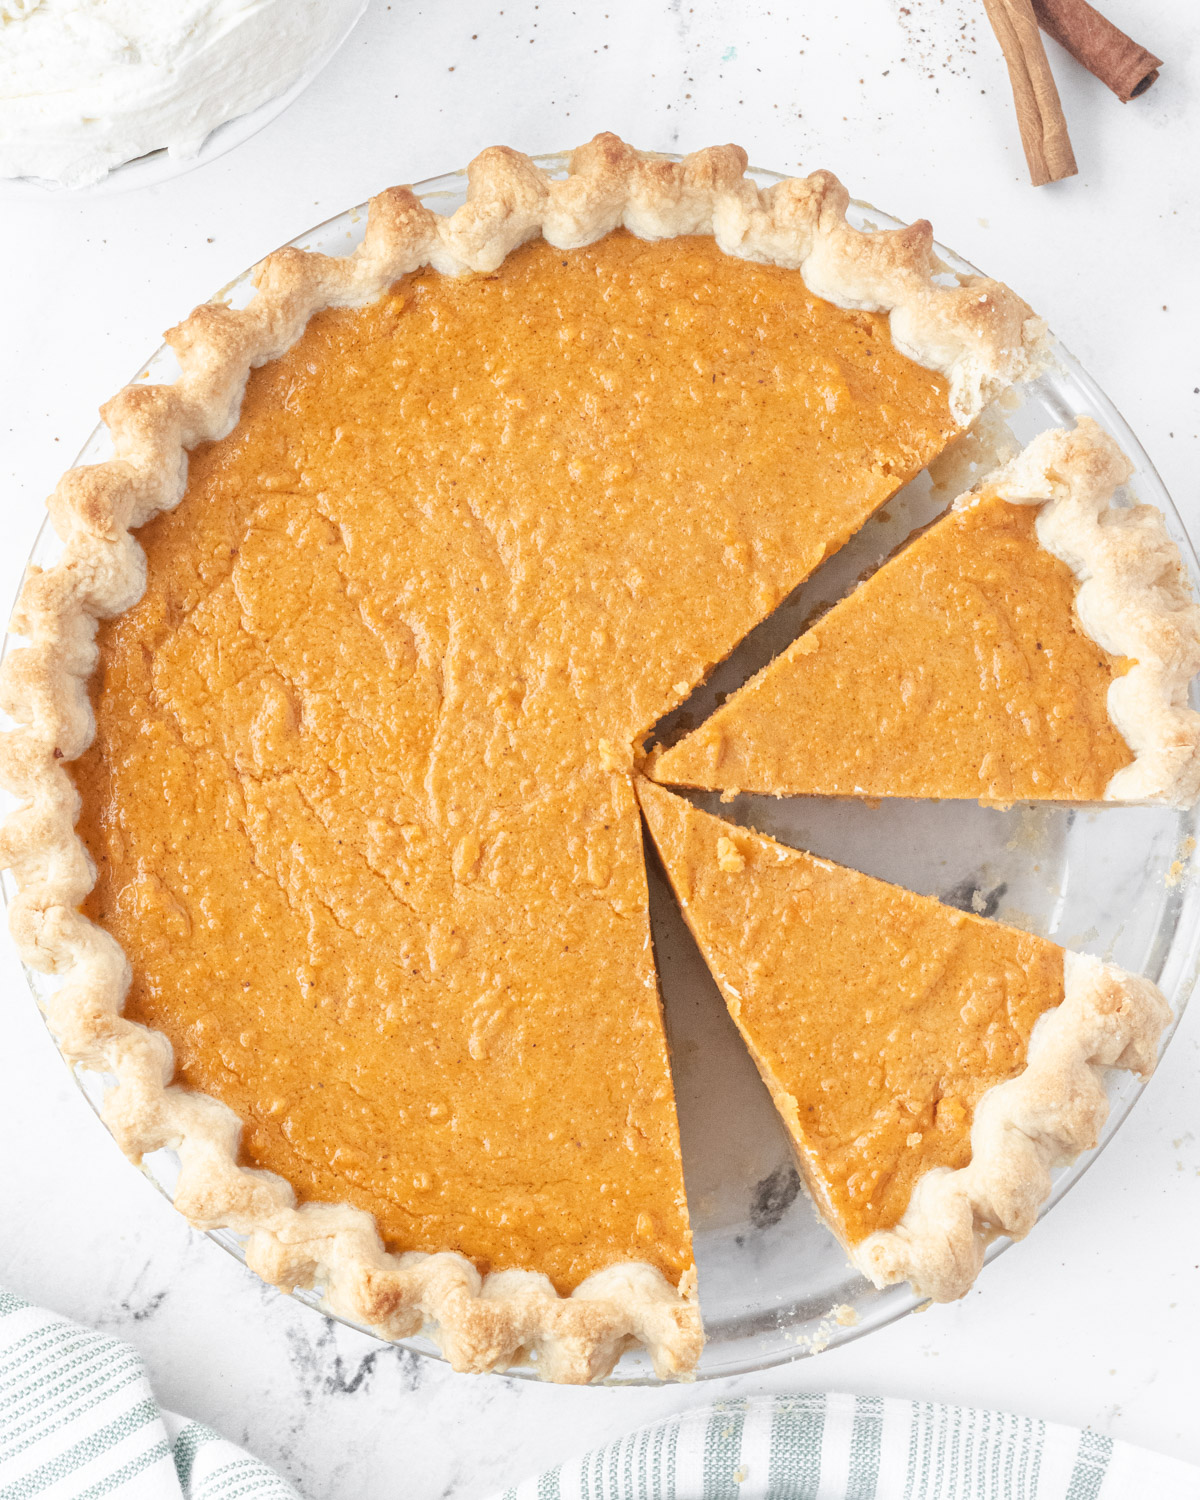 Overhead view of sweet potato pie with two pieces sliced.